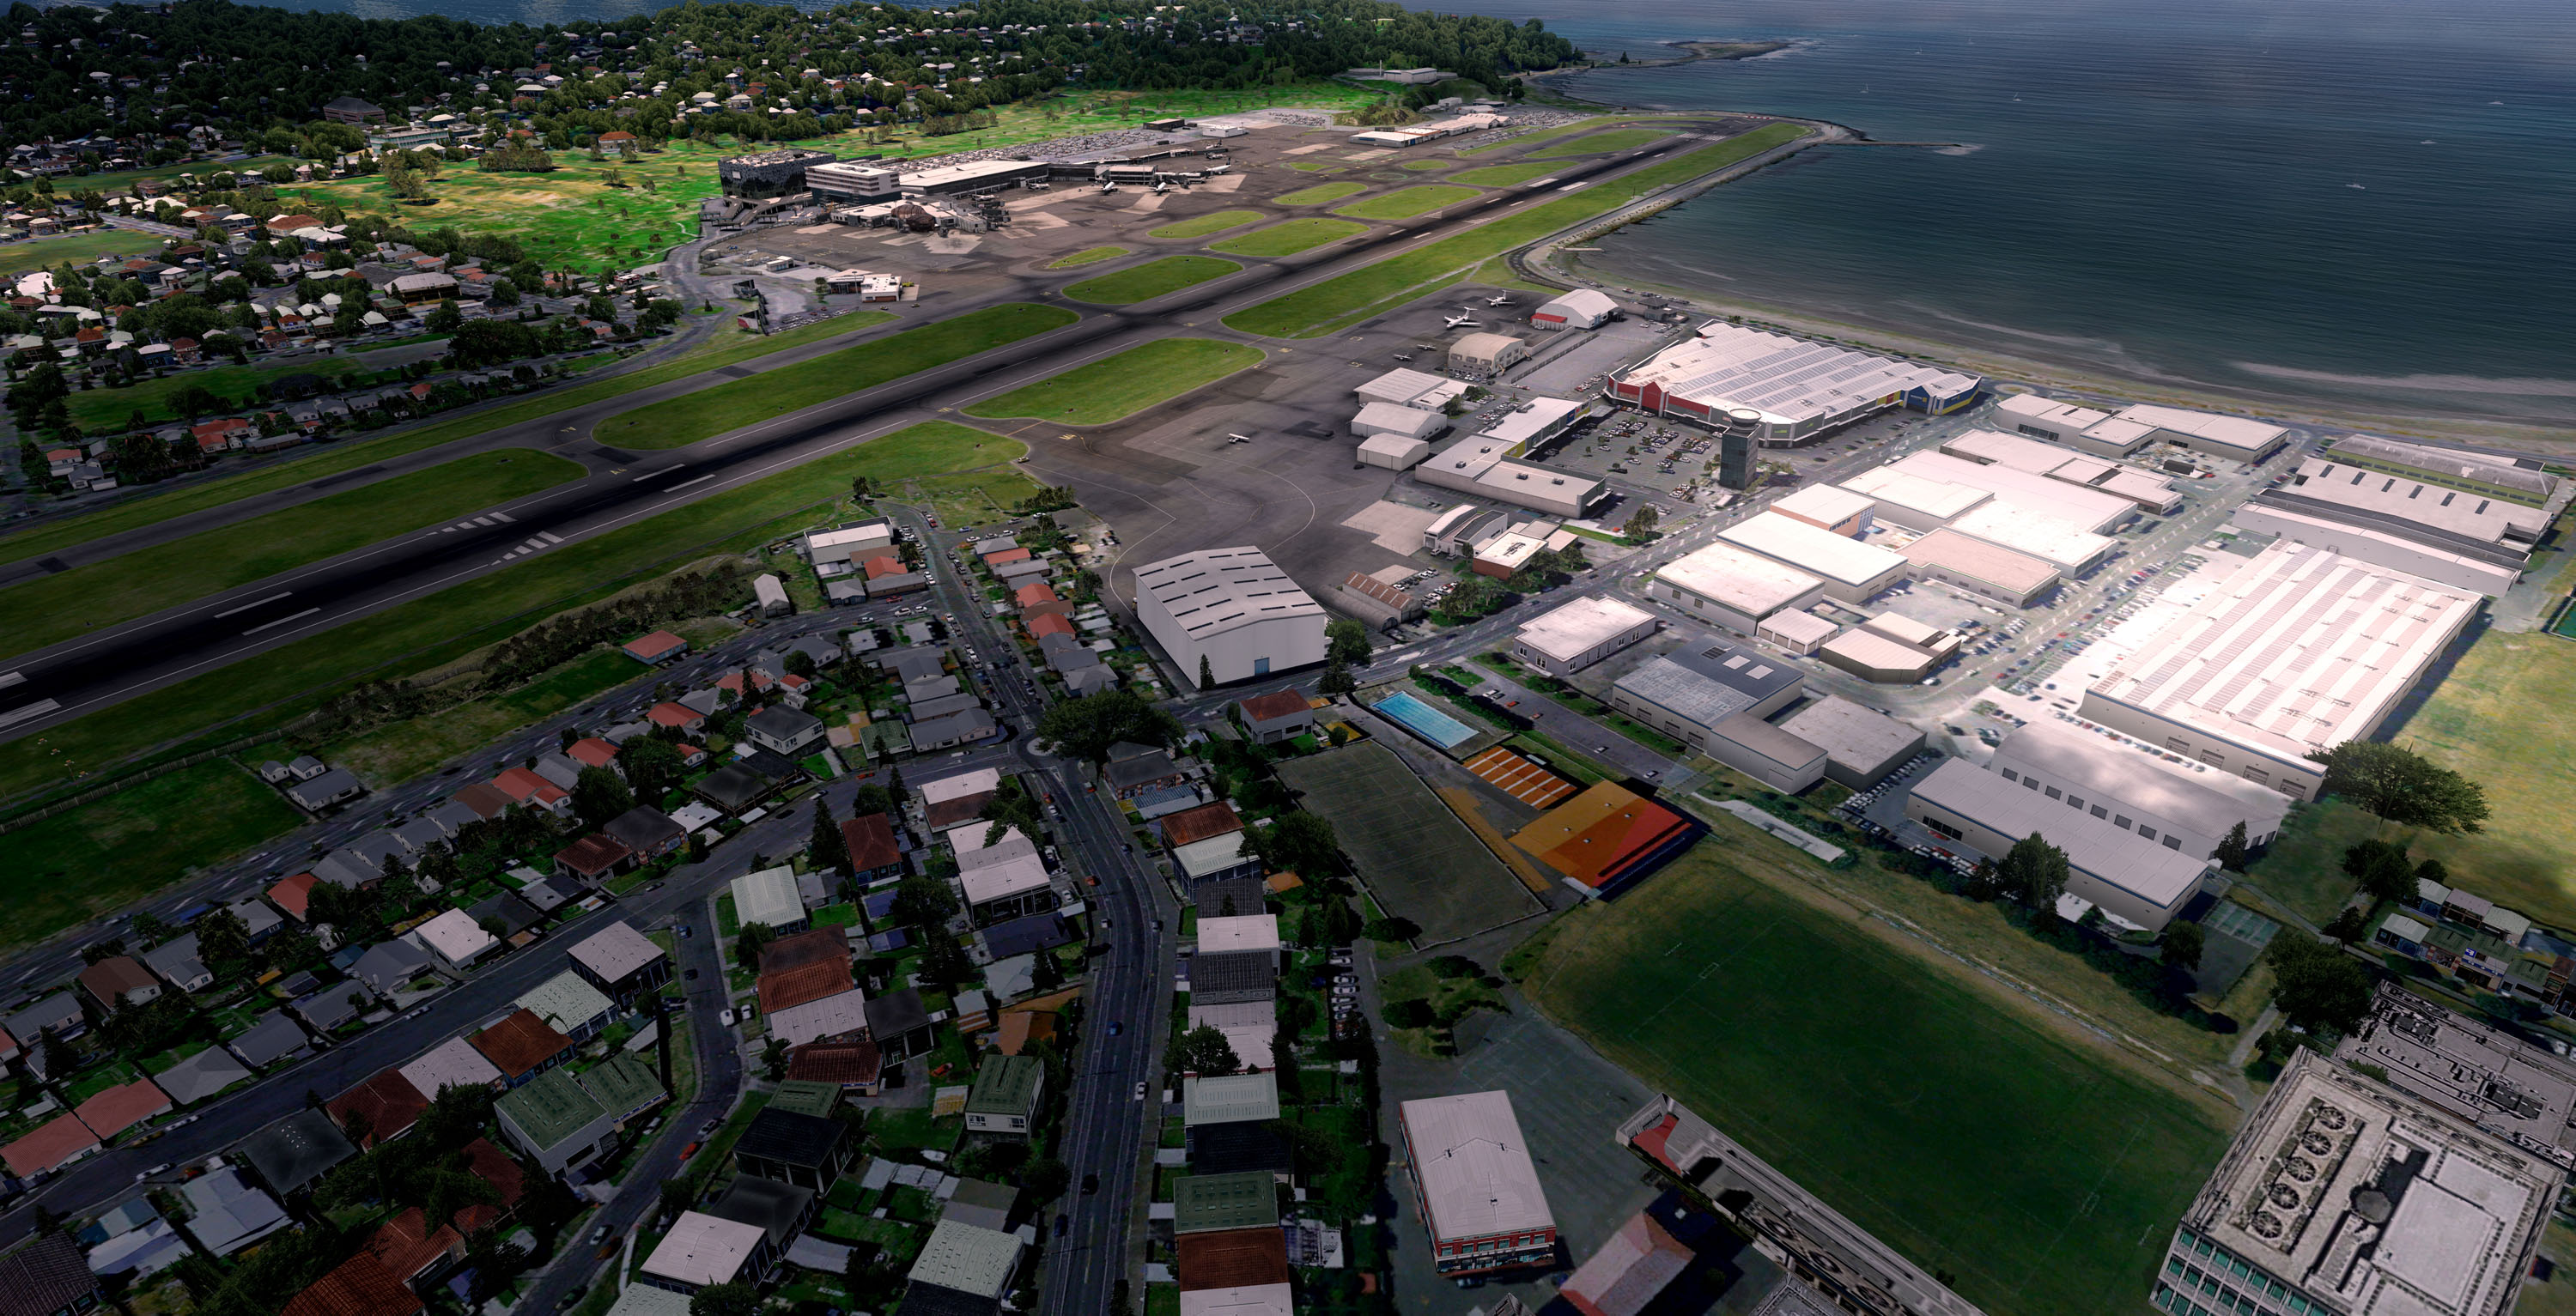 FLIGHTBEAM STUDIOS - NZWN - WELLINGTON INTERNATIONAL P3D